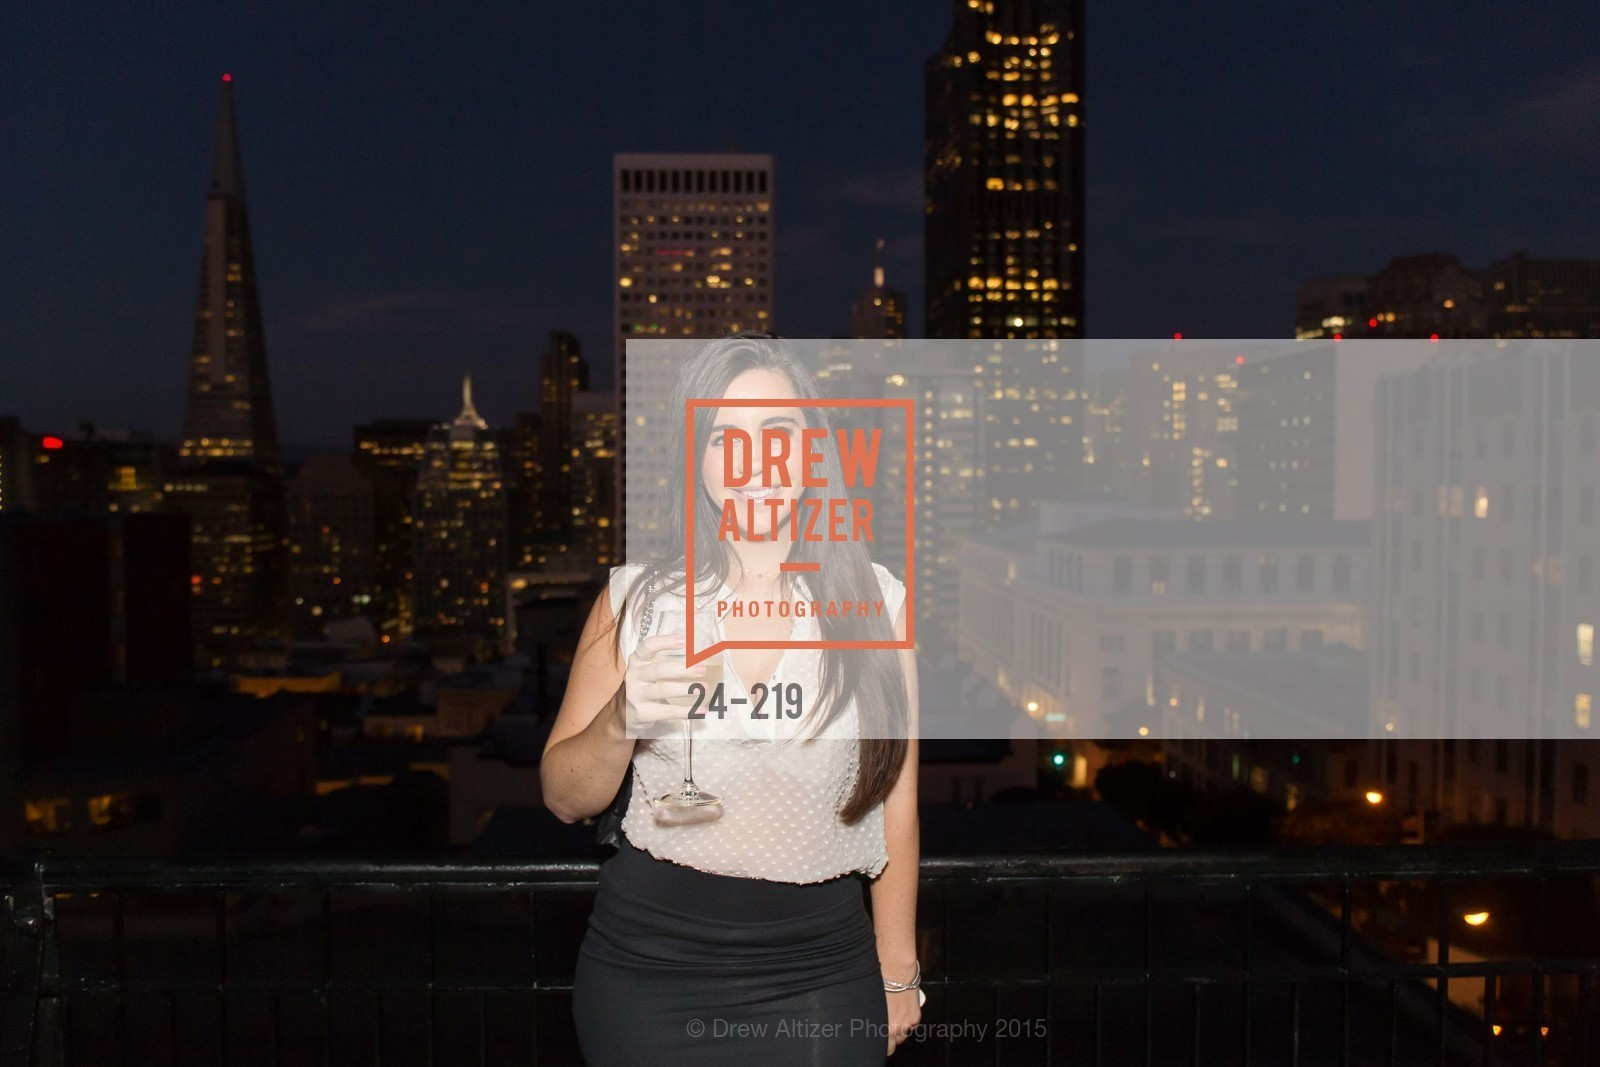 Samantha DeBianchi, Champagne Reception & Screening of Million Dollar Listing San Francisco, University Club. 800 Powell St, August 5th, 2015,Drew Altizer, Drew Altizer Photography, full-service agency, private events, San Francisco photographer, photographer california